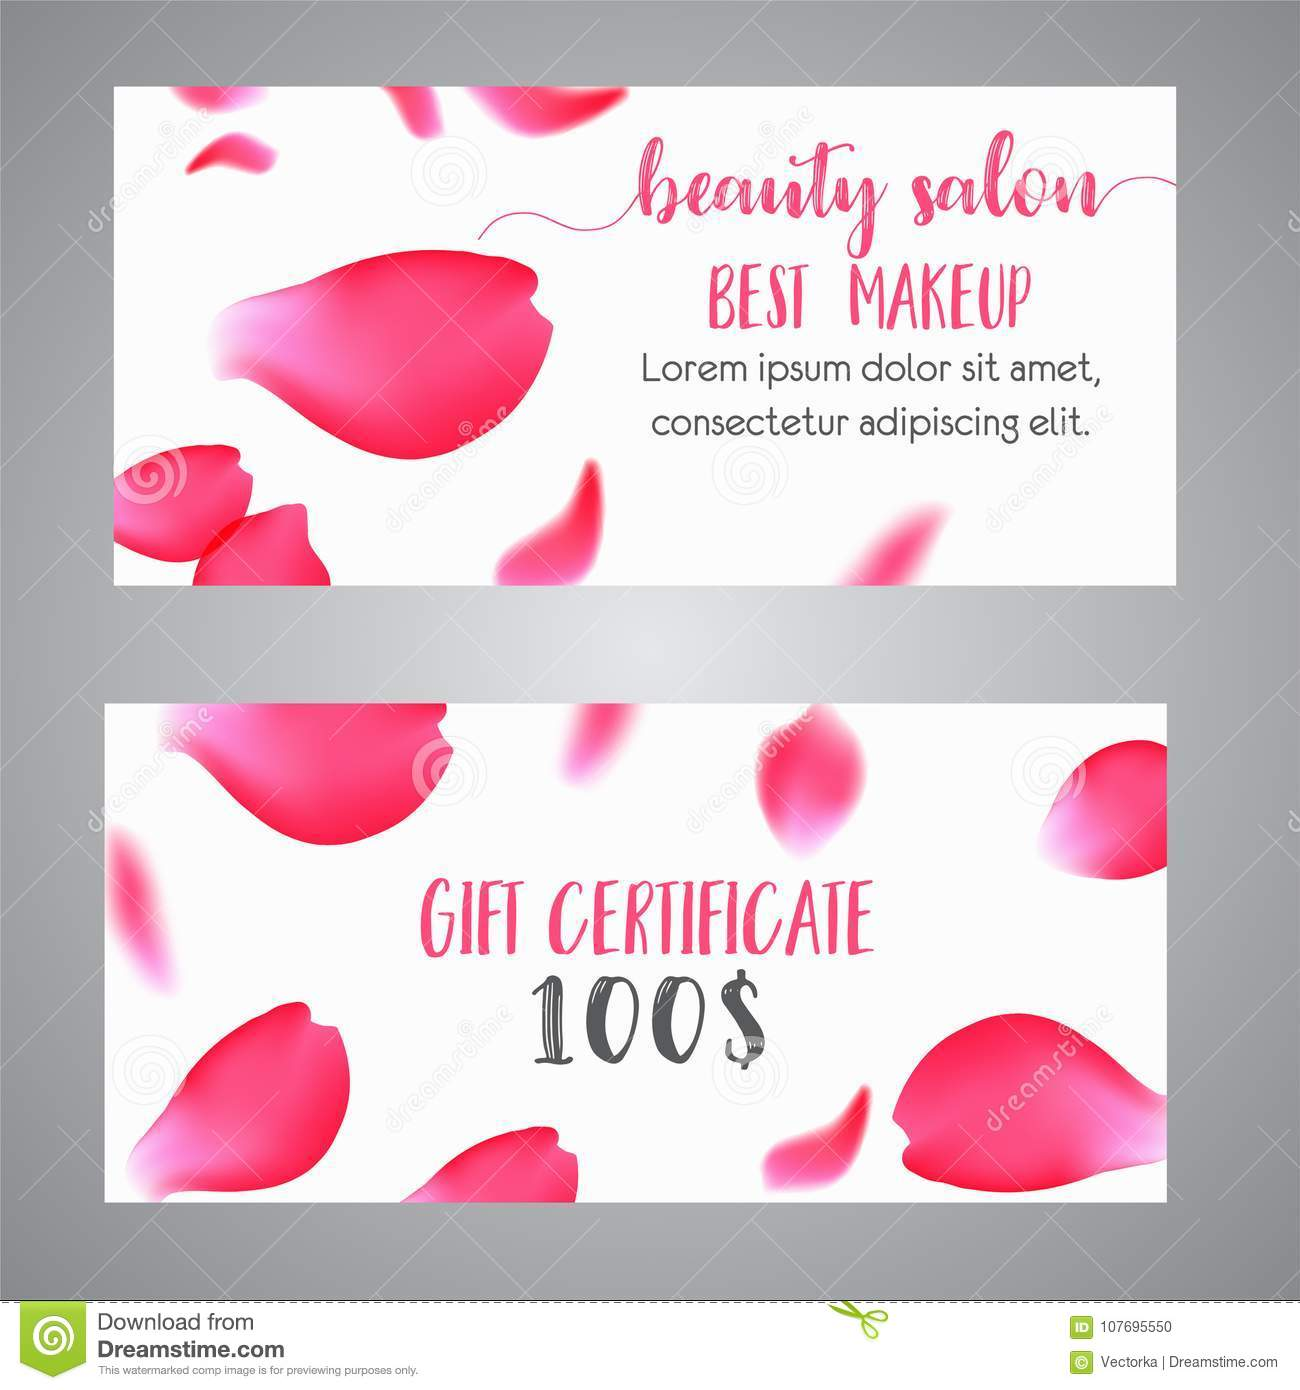 vector gift voucher template with rose petals business floral card template concept for boutique - Makeup Gift Certificate Template